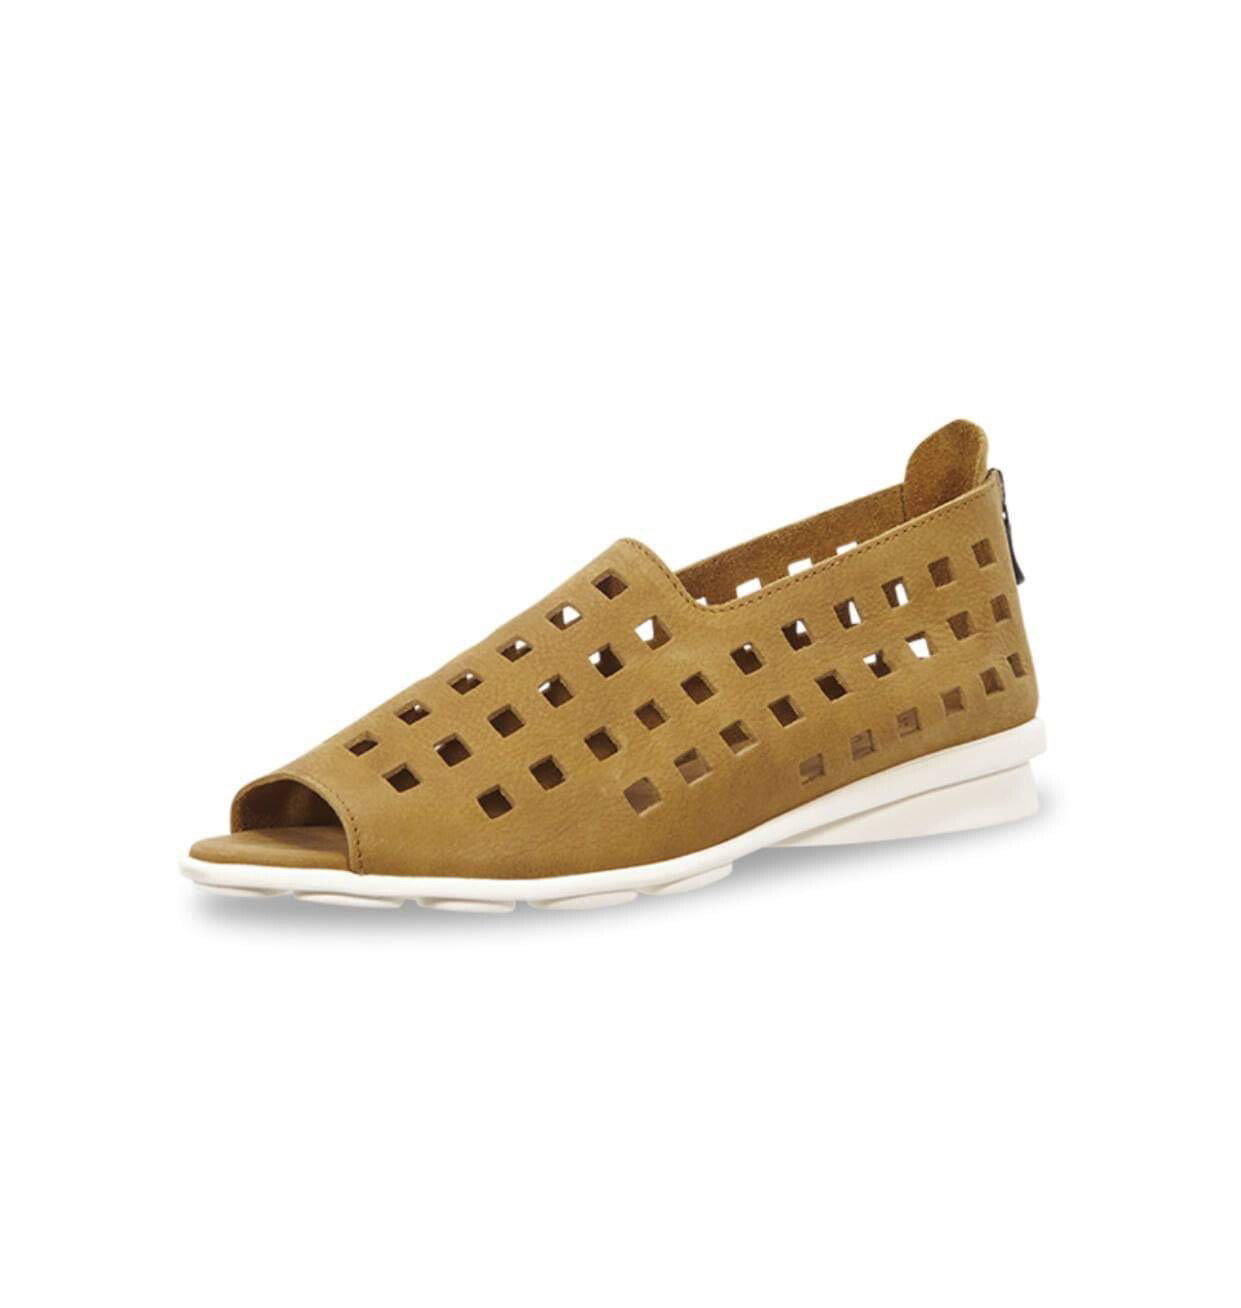 Tan Perforated Sandal